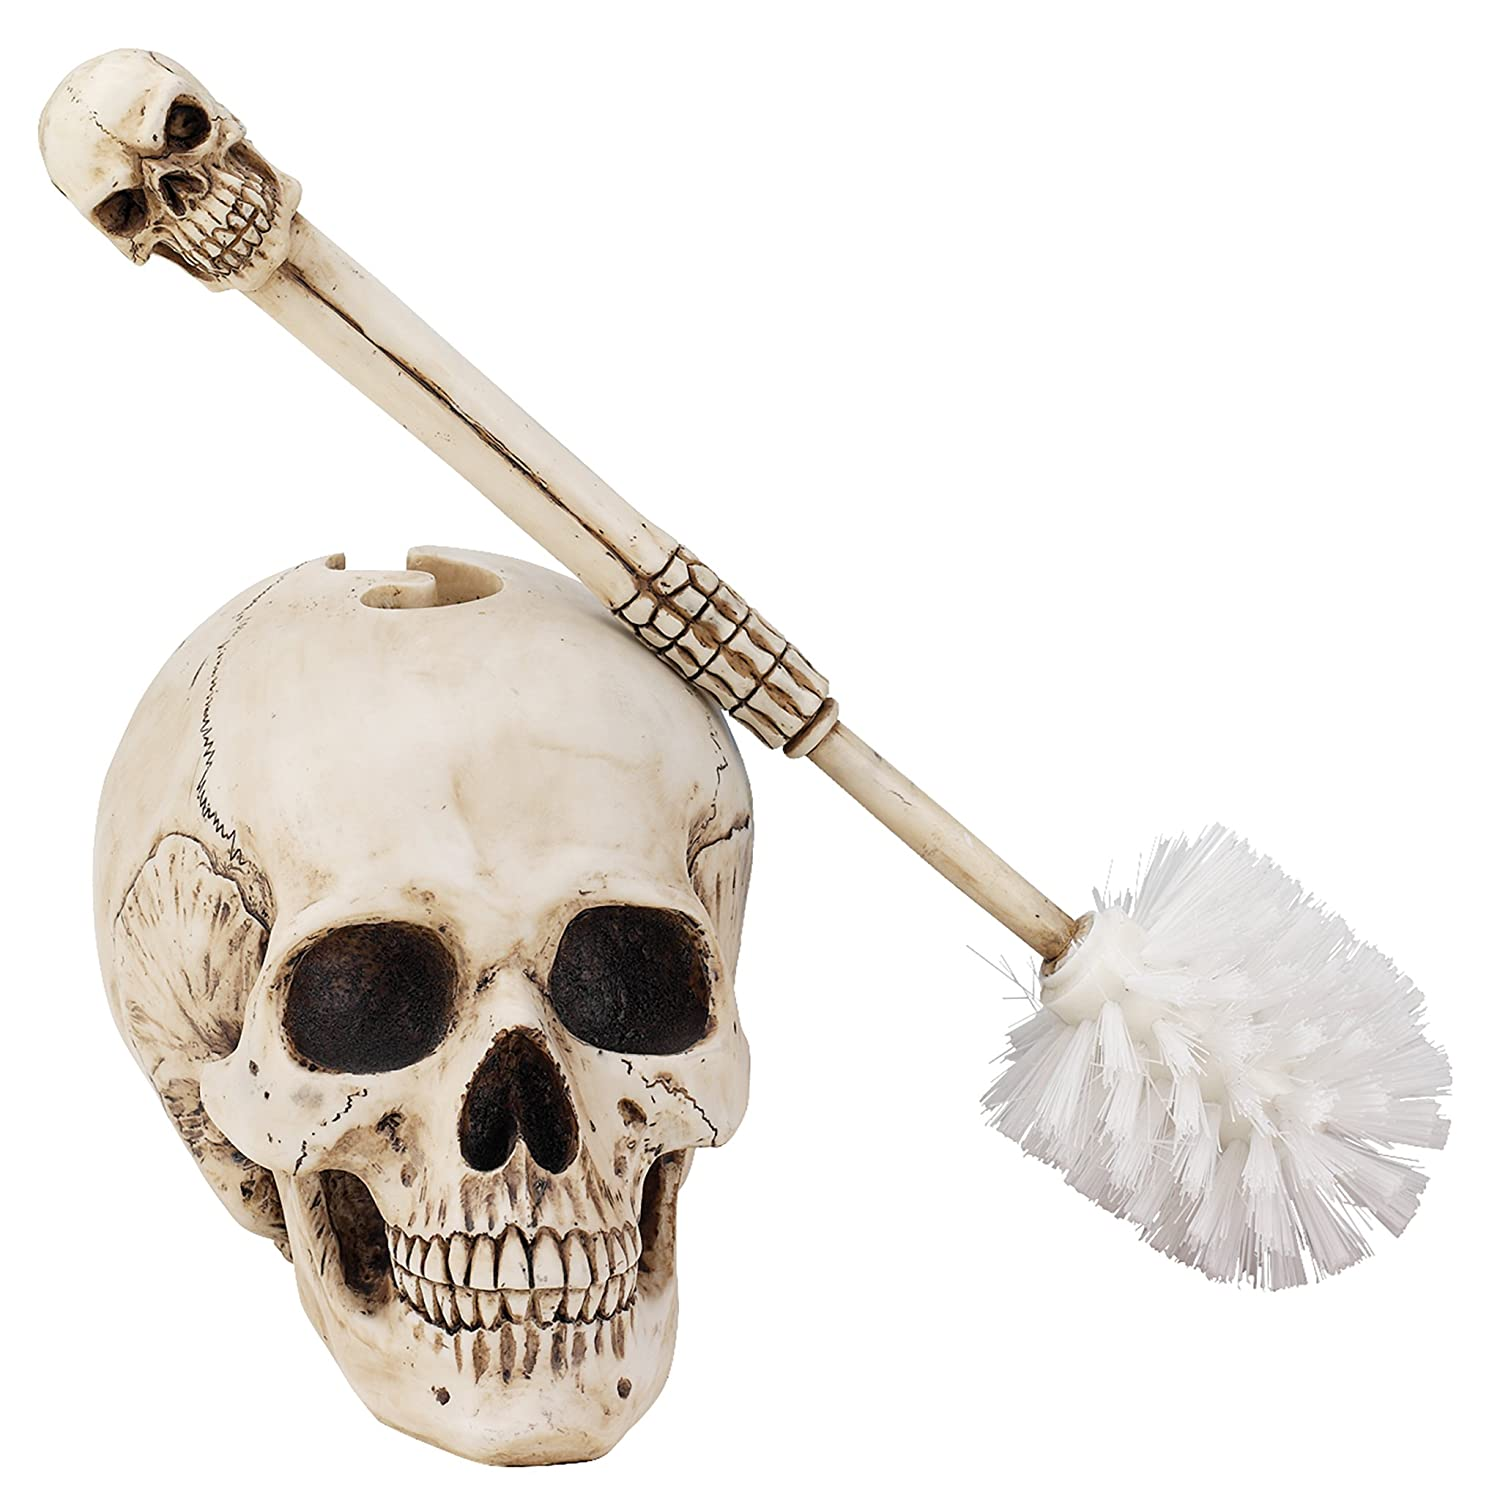 Skull skeleton toilet brush and holder bathroom accessory